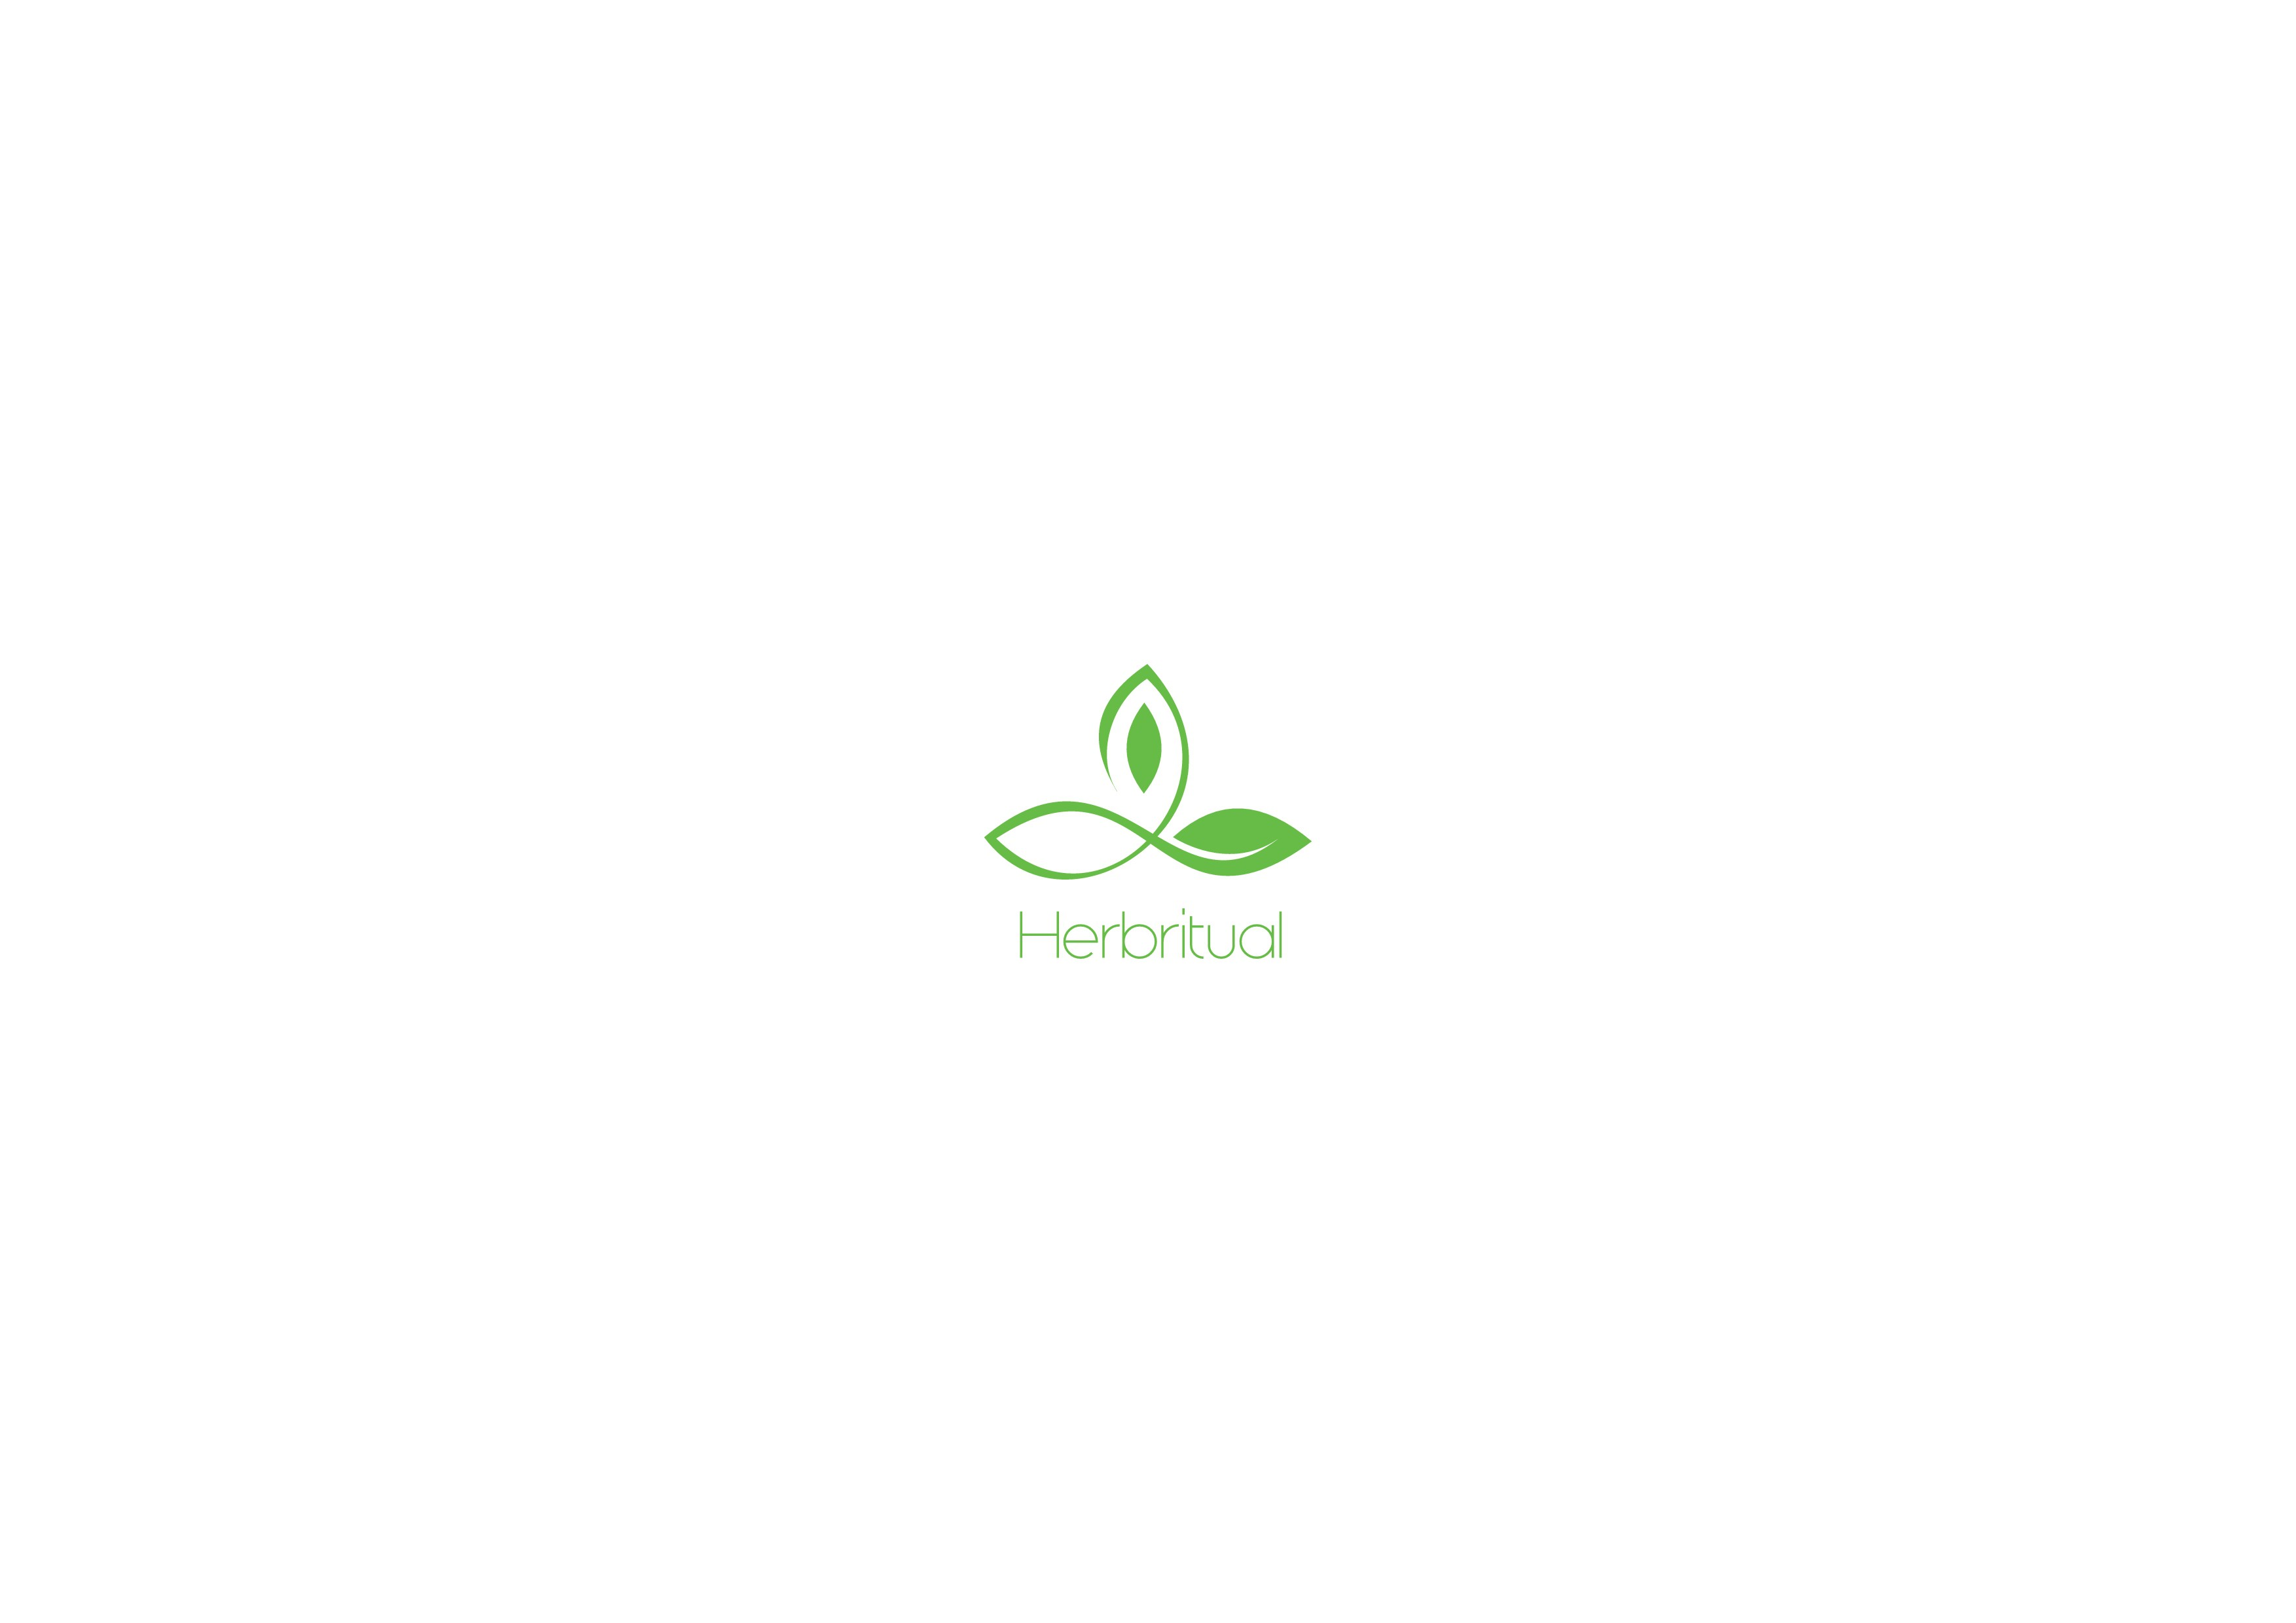 Create a unique recognizable logo for Herbritual lifestyle brand